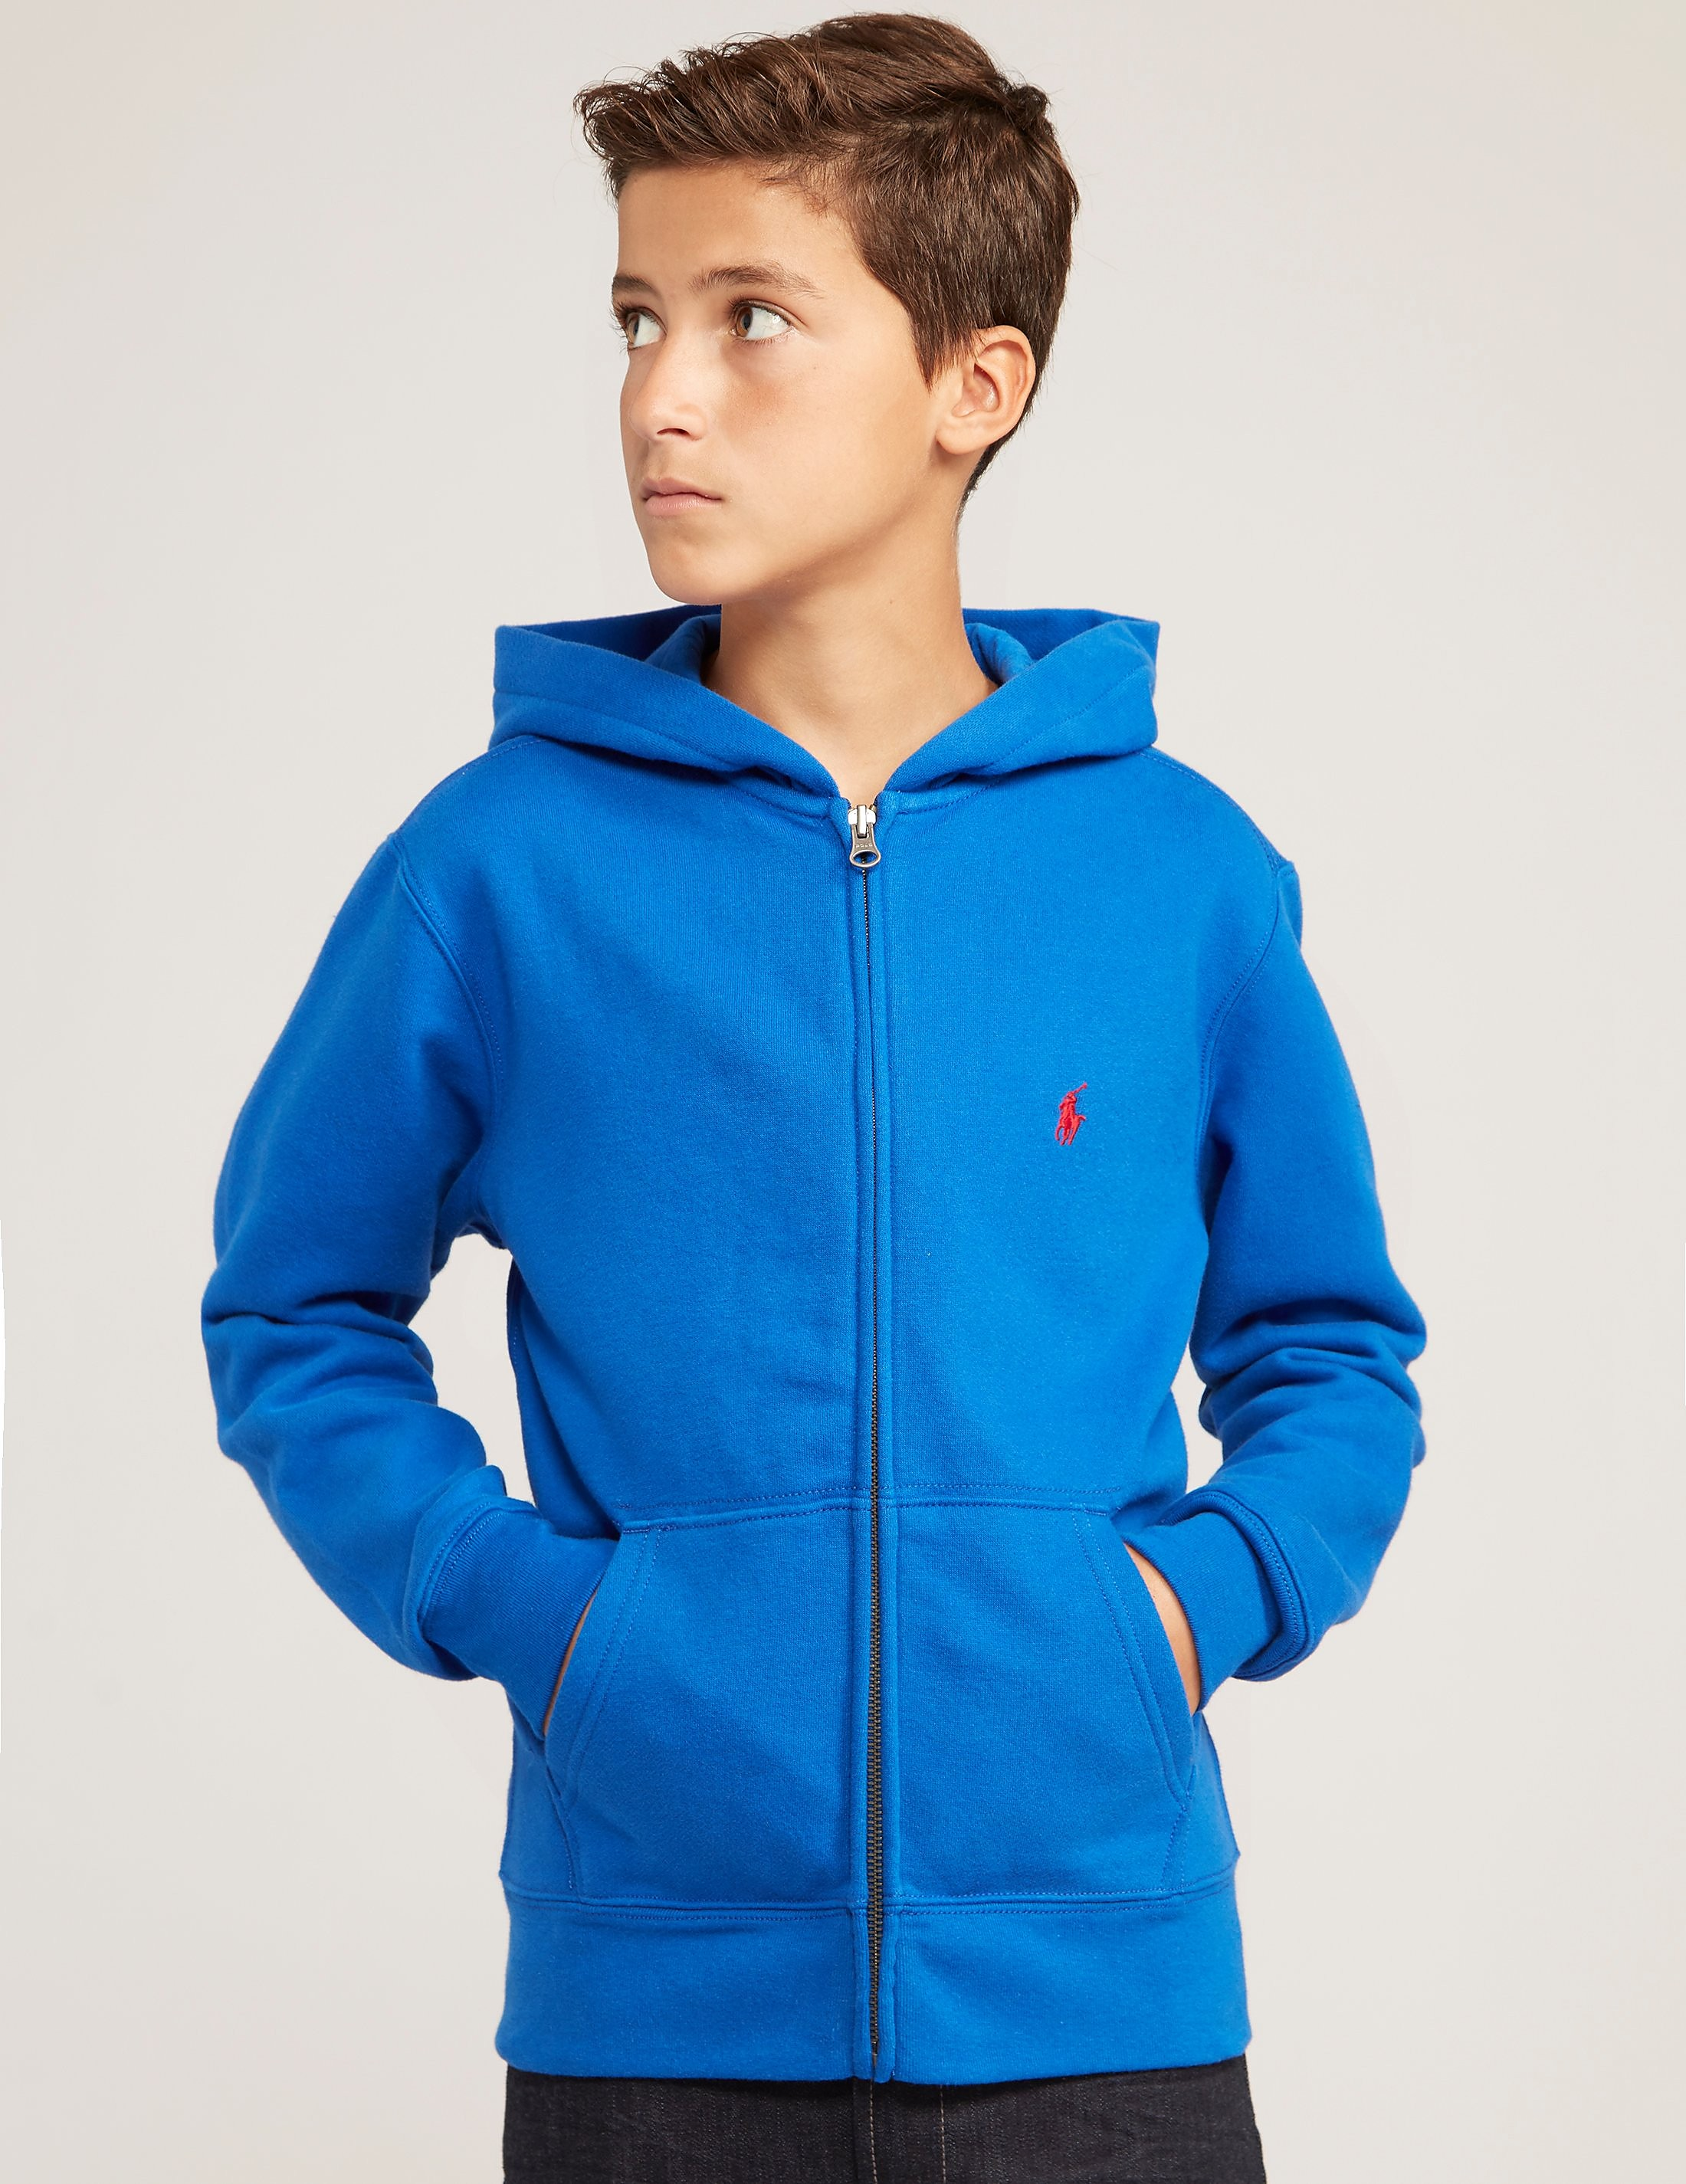 Polo Ralph Lauren Boys' Zip Up Hoody